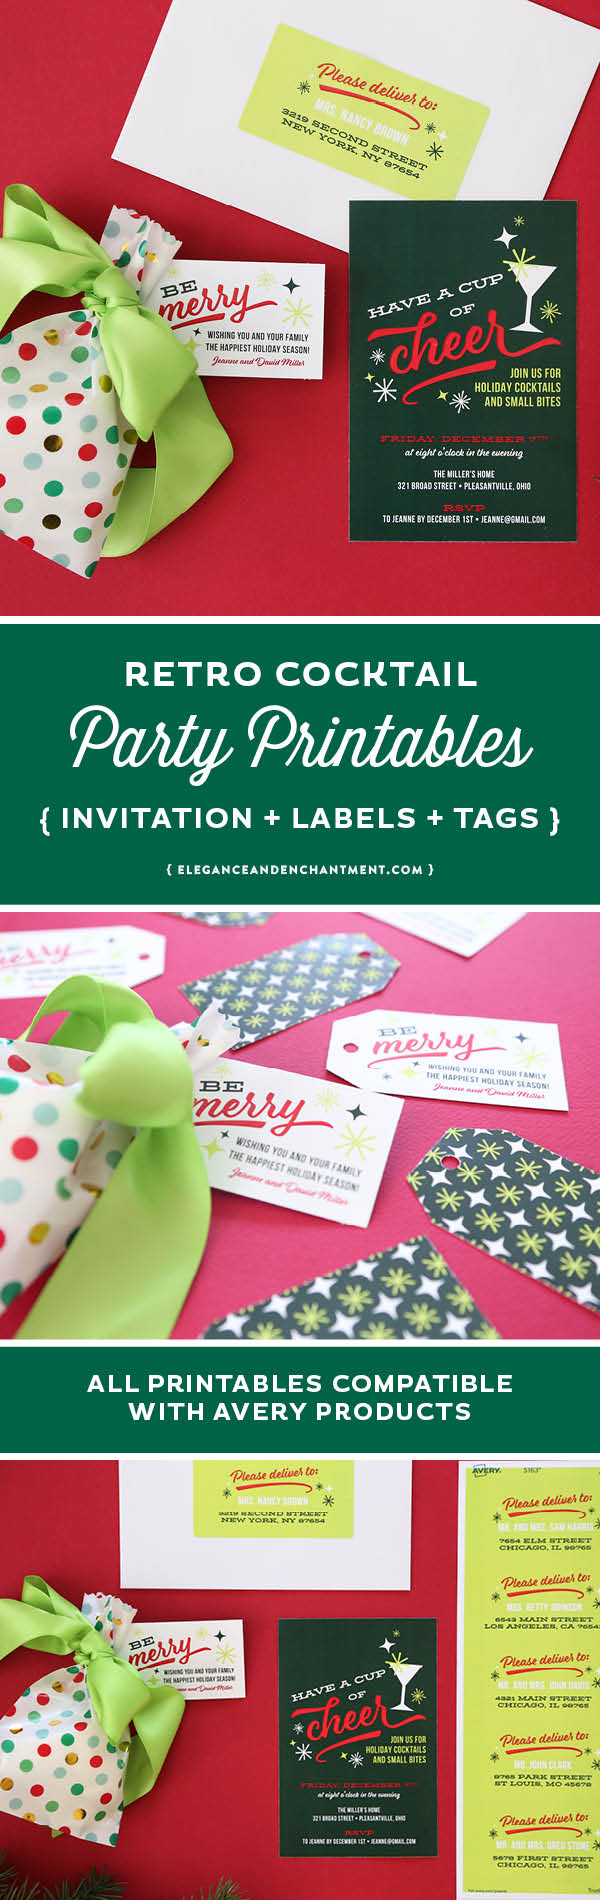 retro holiday cocktail party printables invitation labels and